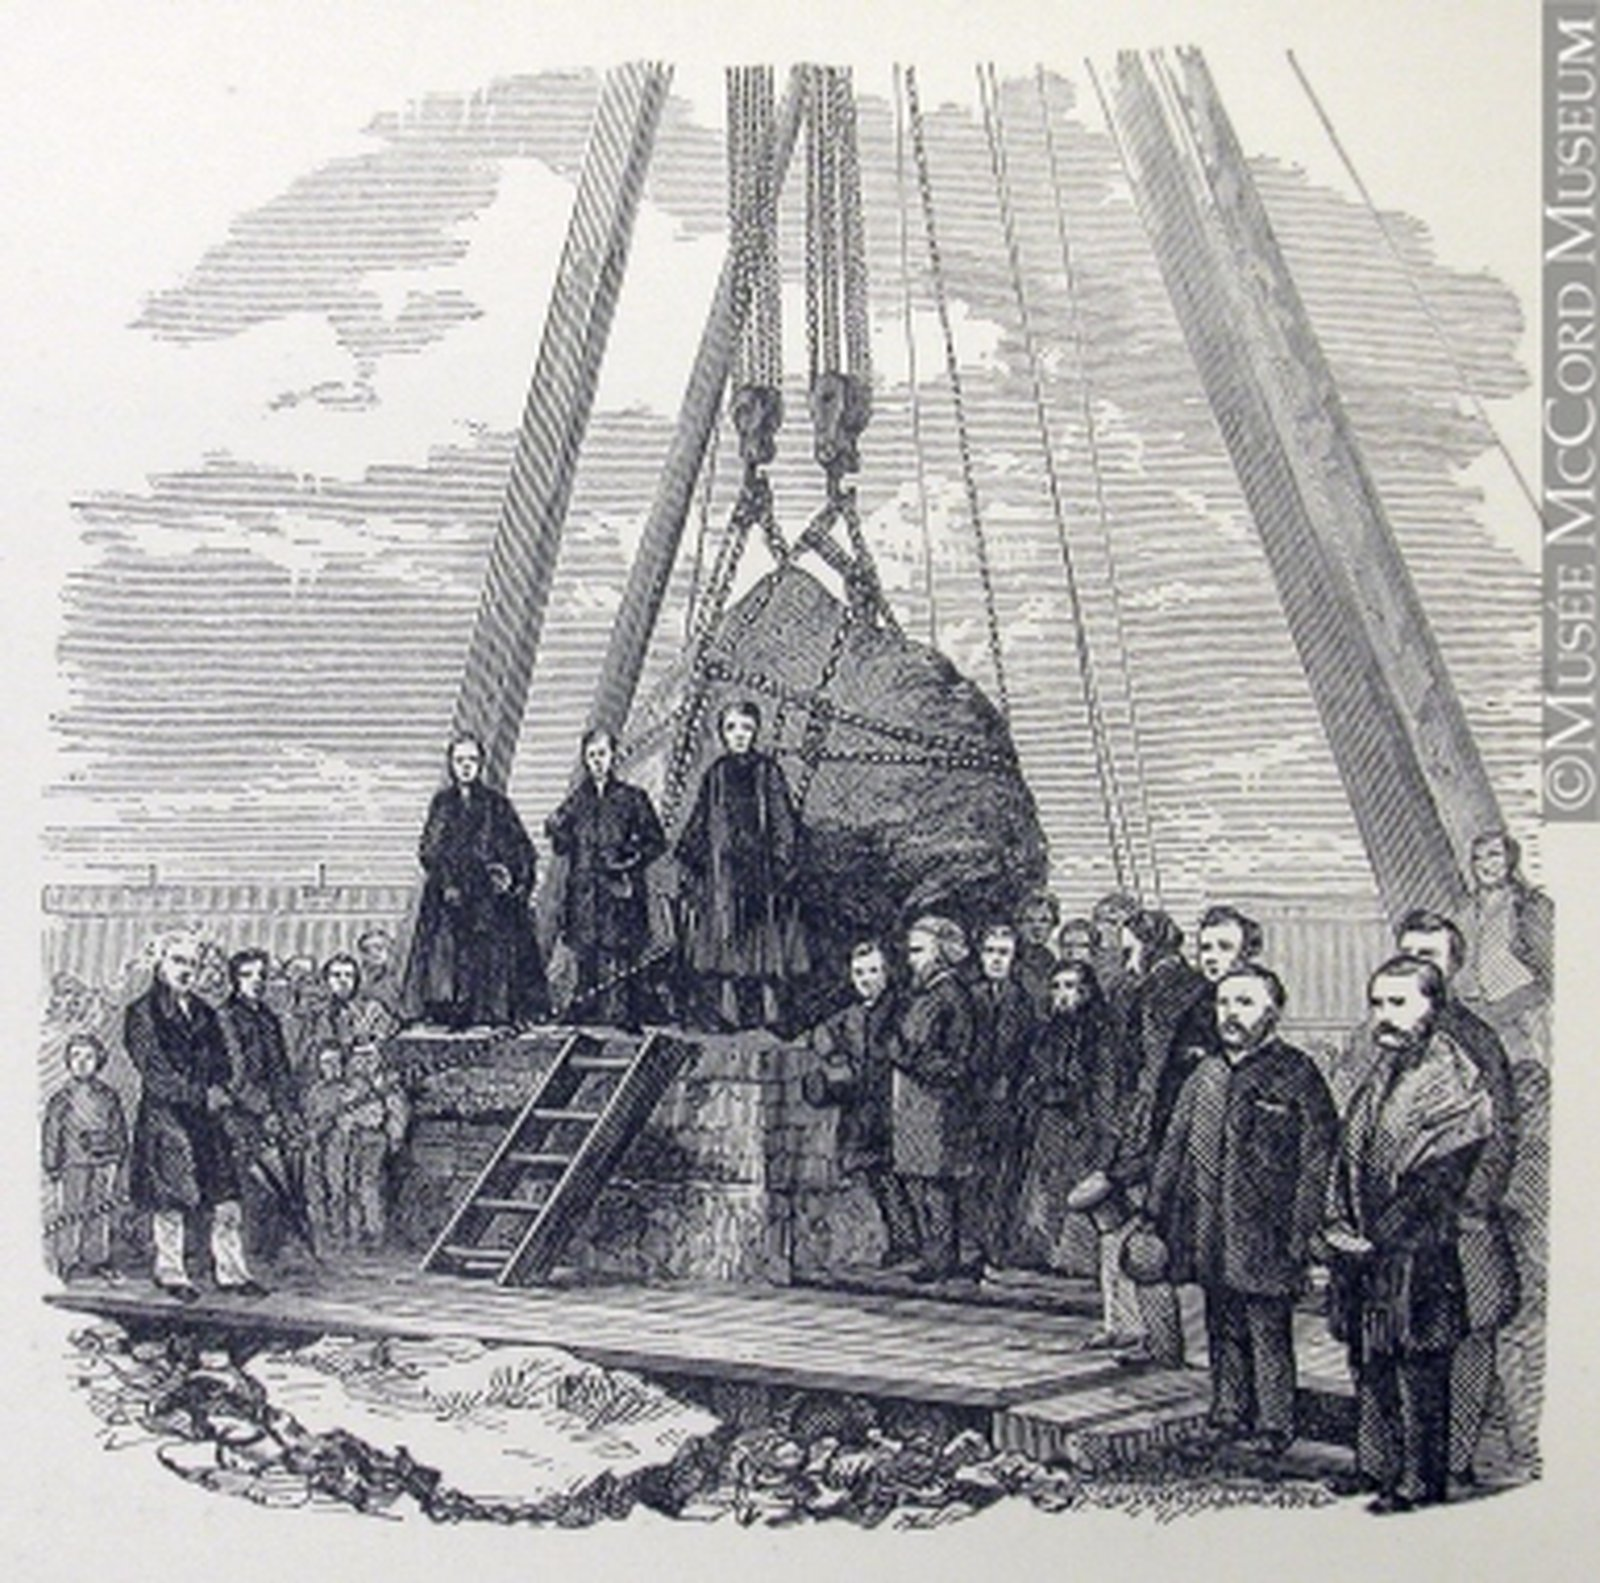 Image - A depiction of the laying of the 'Black Rock' of Montreal, marking the graves of 6000 Irish iimmigrants near Victoria Bridge (1860). Gift of Mr. David Ross McCord. M15934.45 © McCord Museum